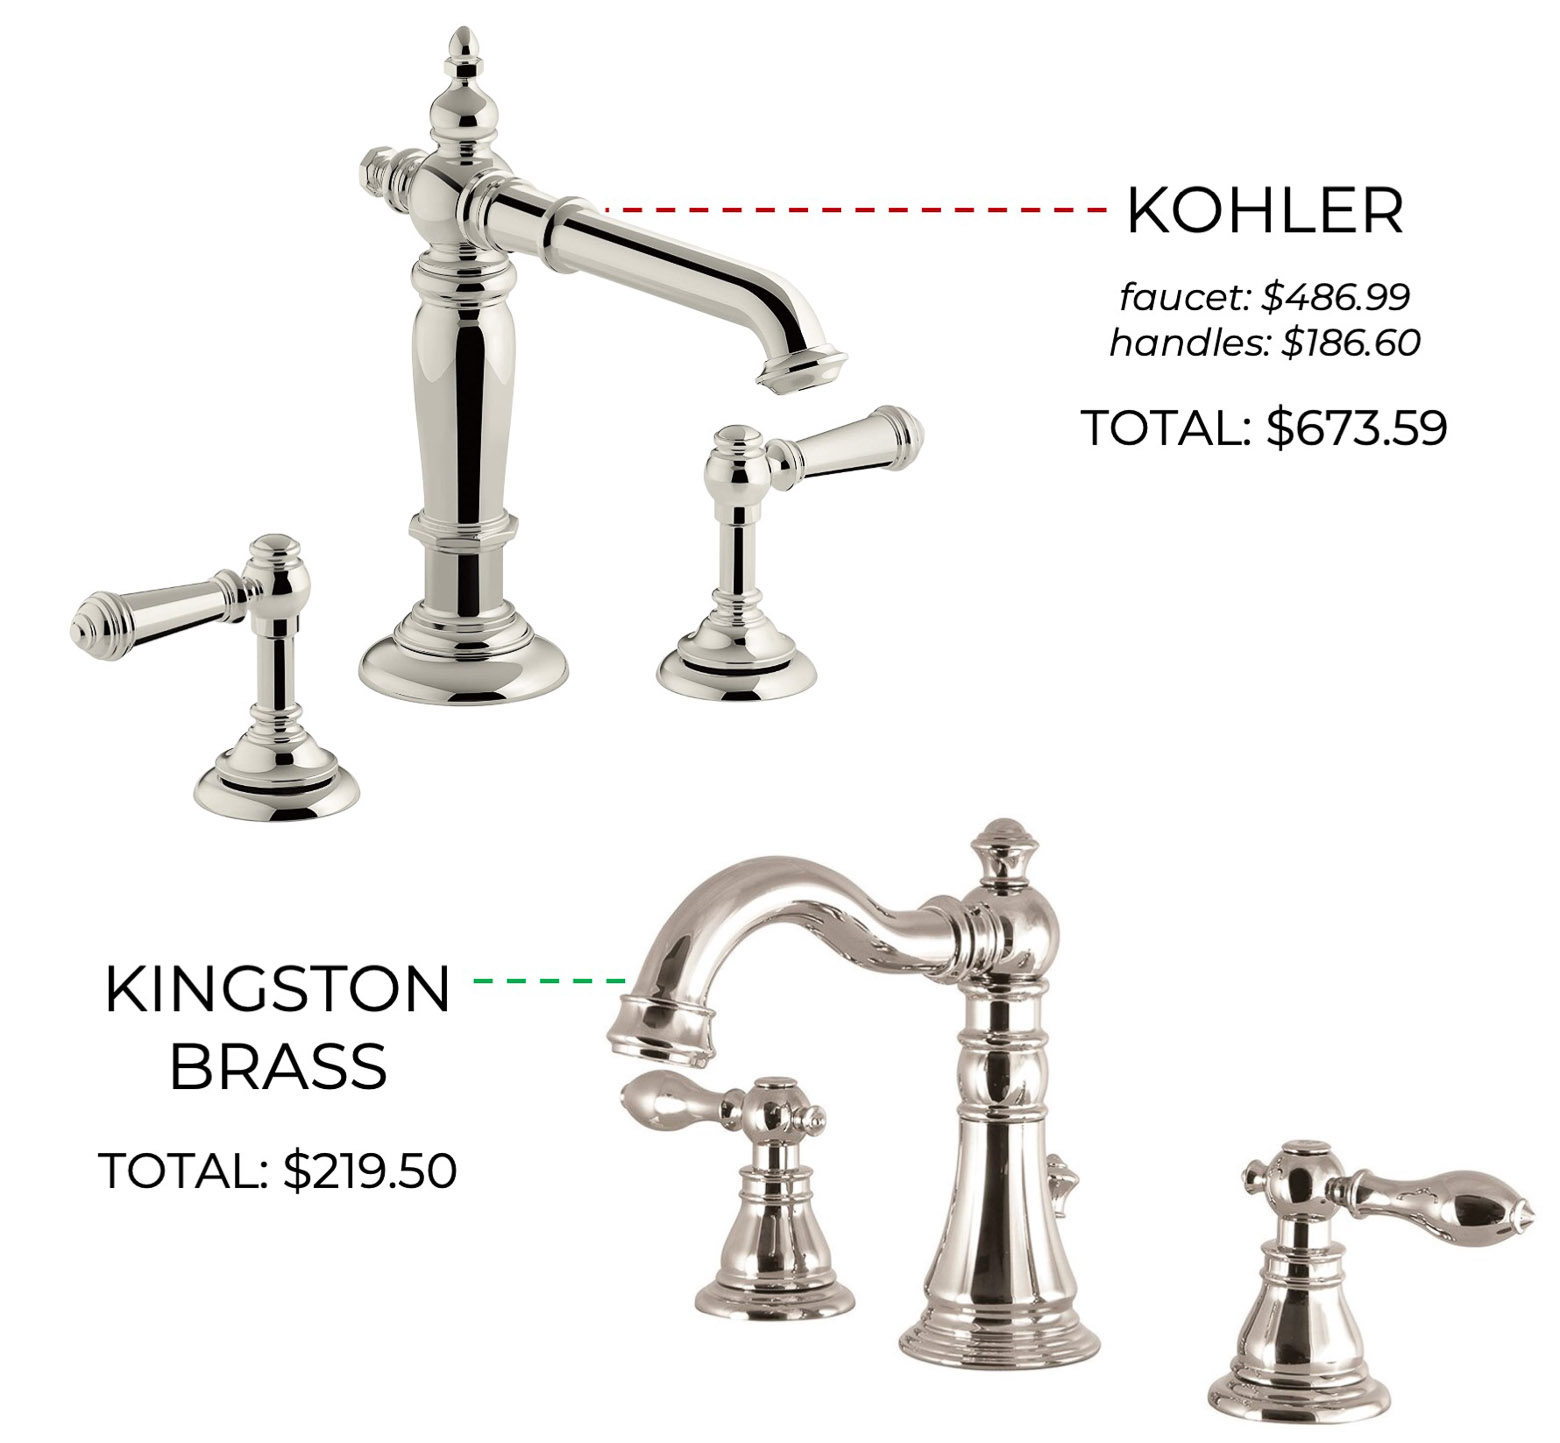 Master Bathroom Faucet - high and low!